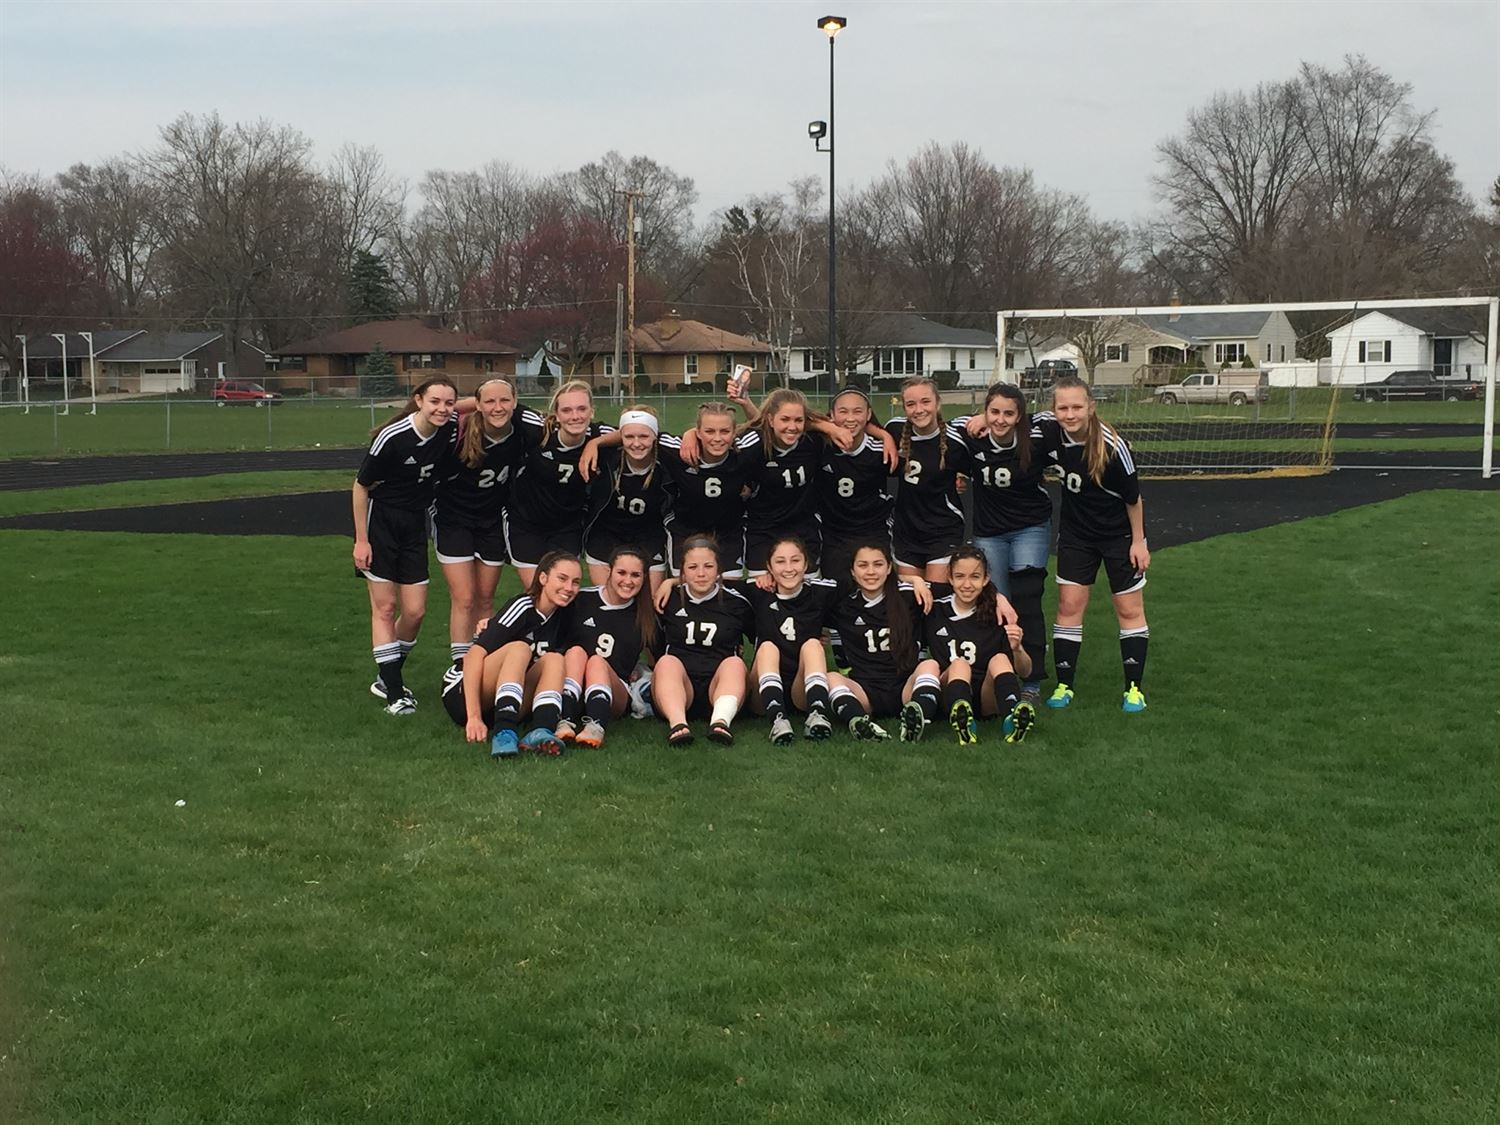 West Ottawa High School - Girls' Junior Varsity Soccer